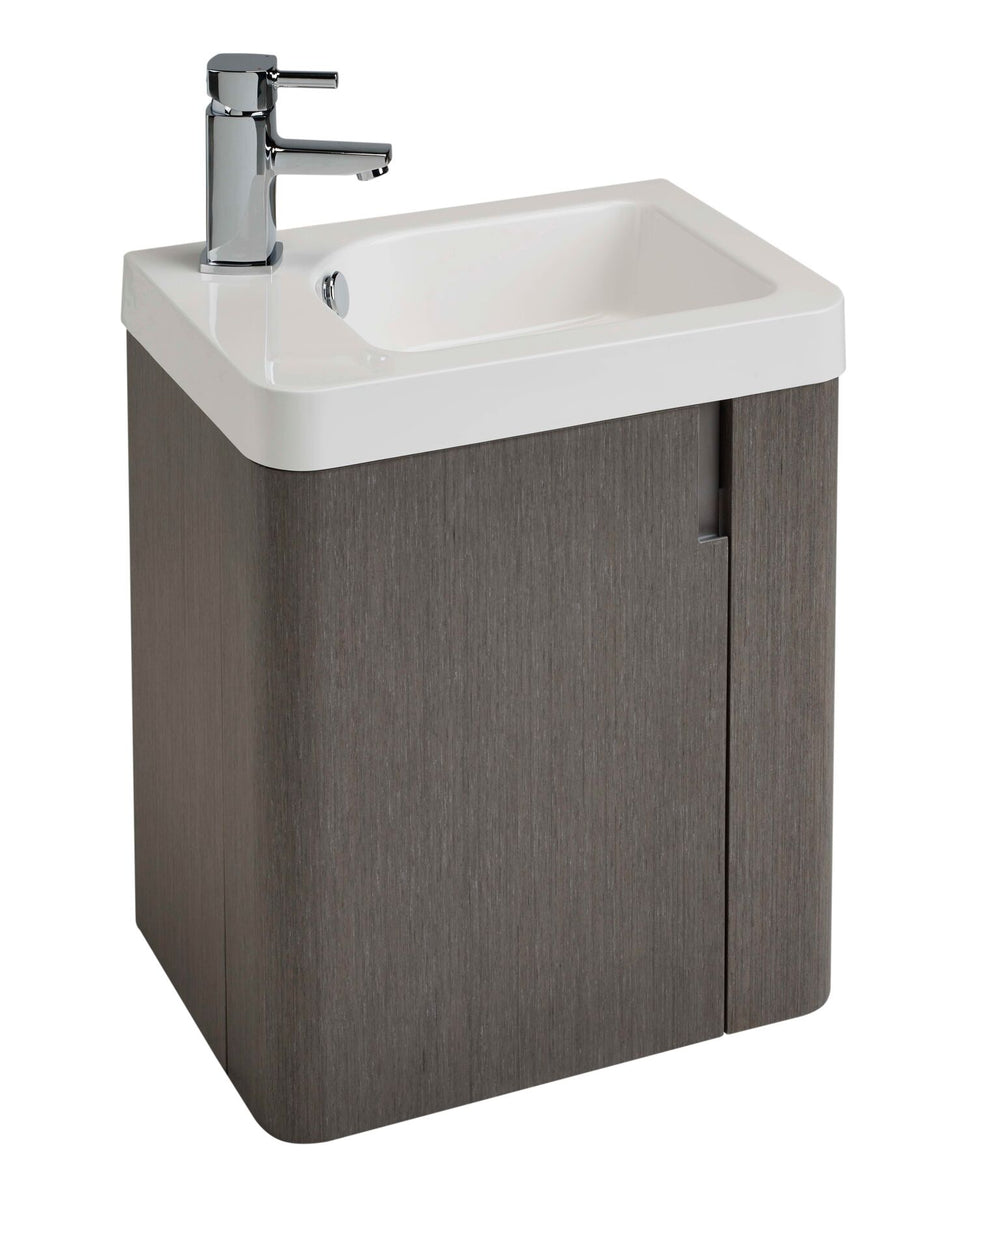 Cara 450 WH Basin Unit ASH GREY